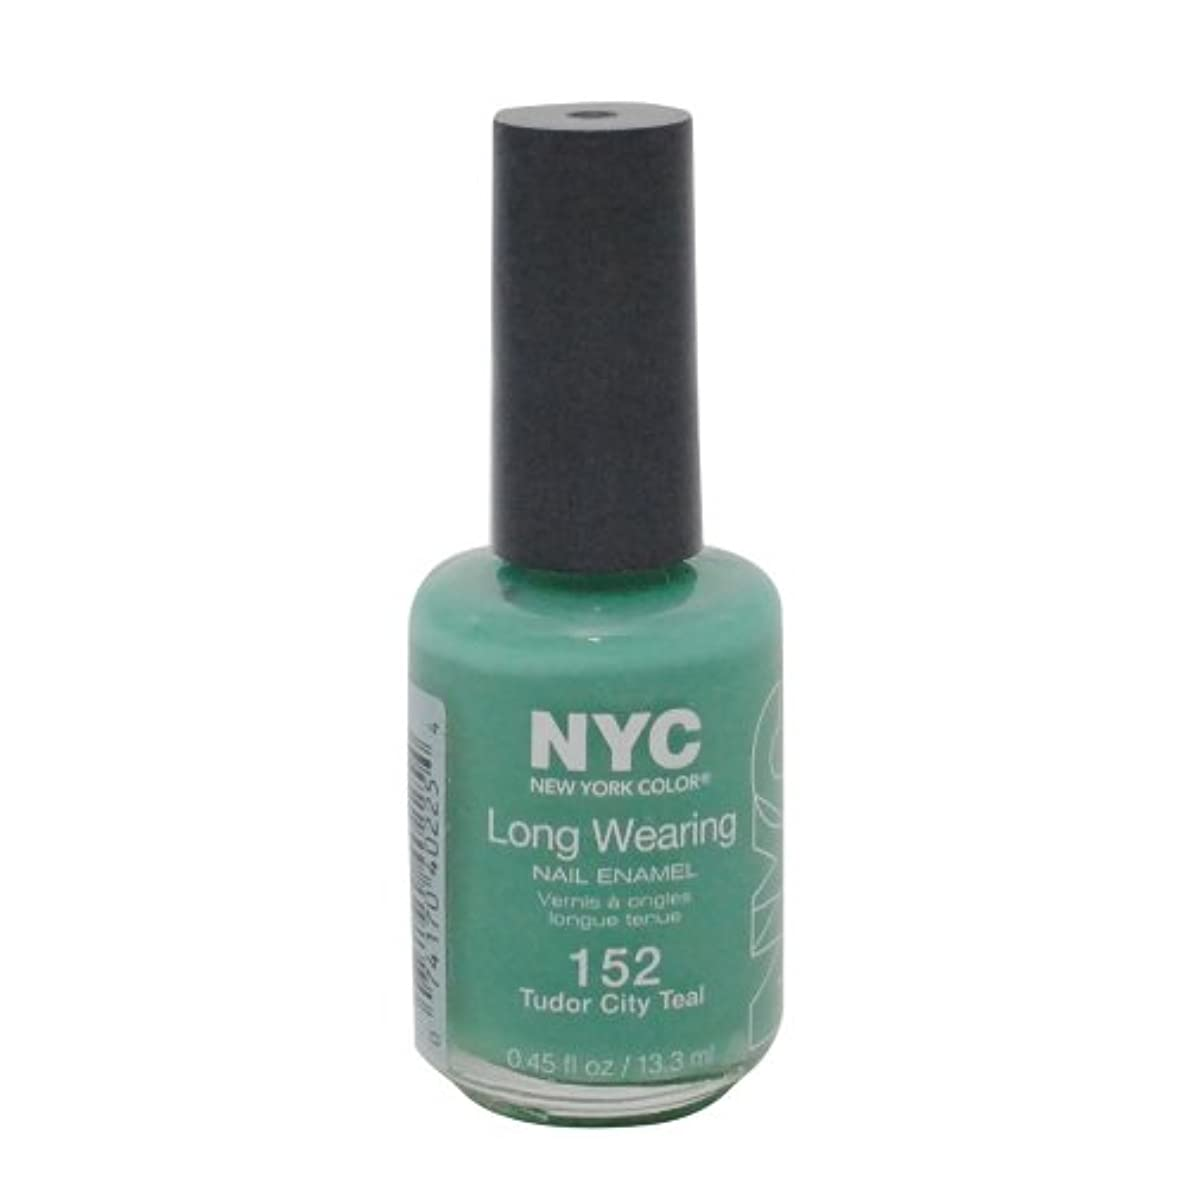 あえて貢献する前件NYC Long Wearing Nail Enamel - Tudor City Teal by NYC New York Color